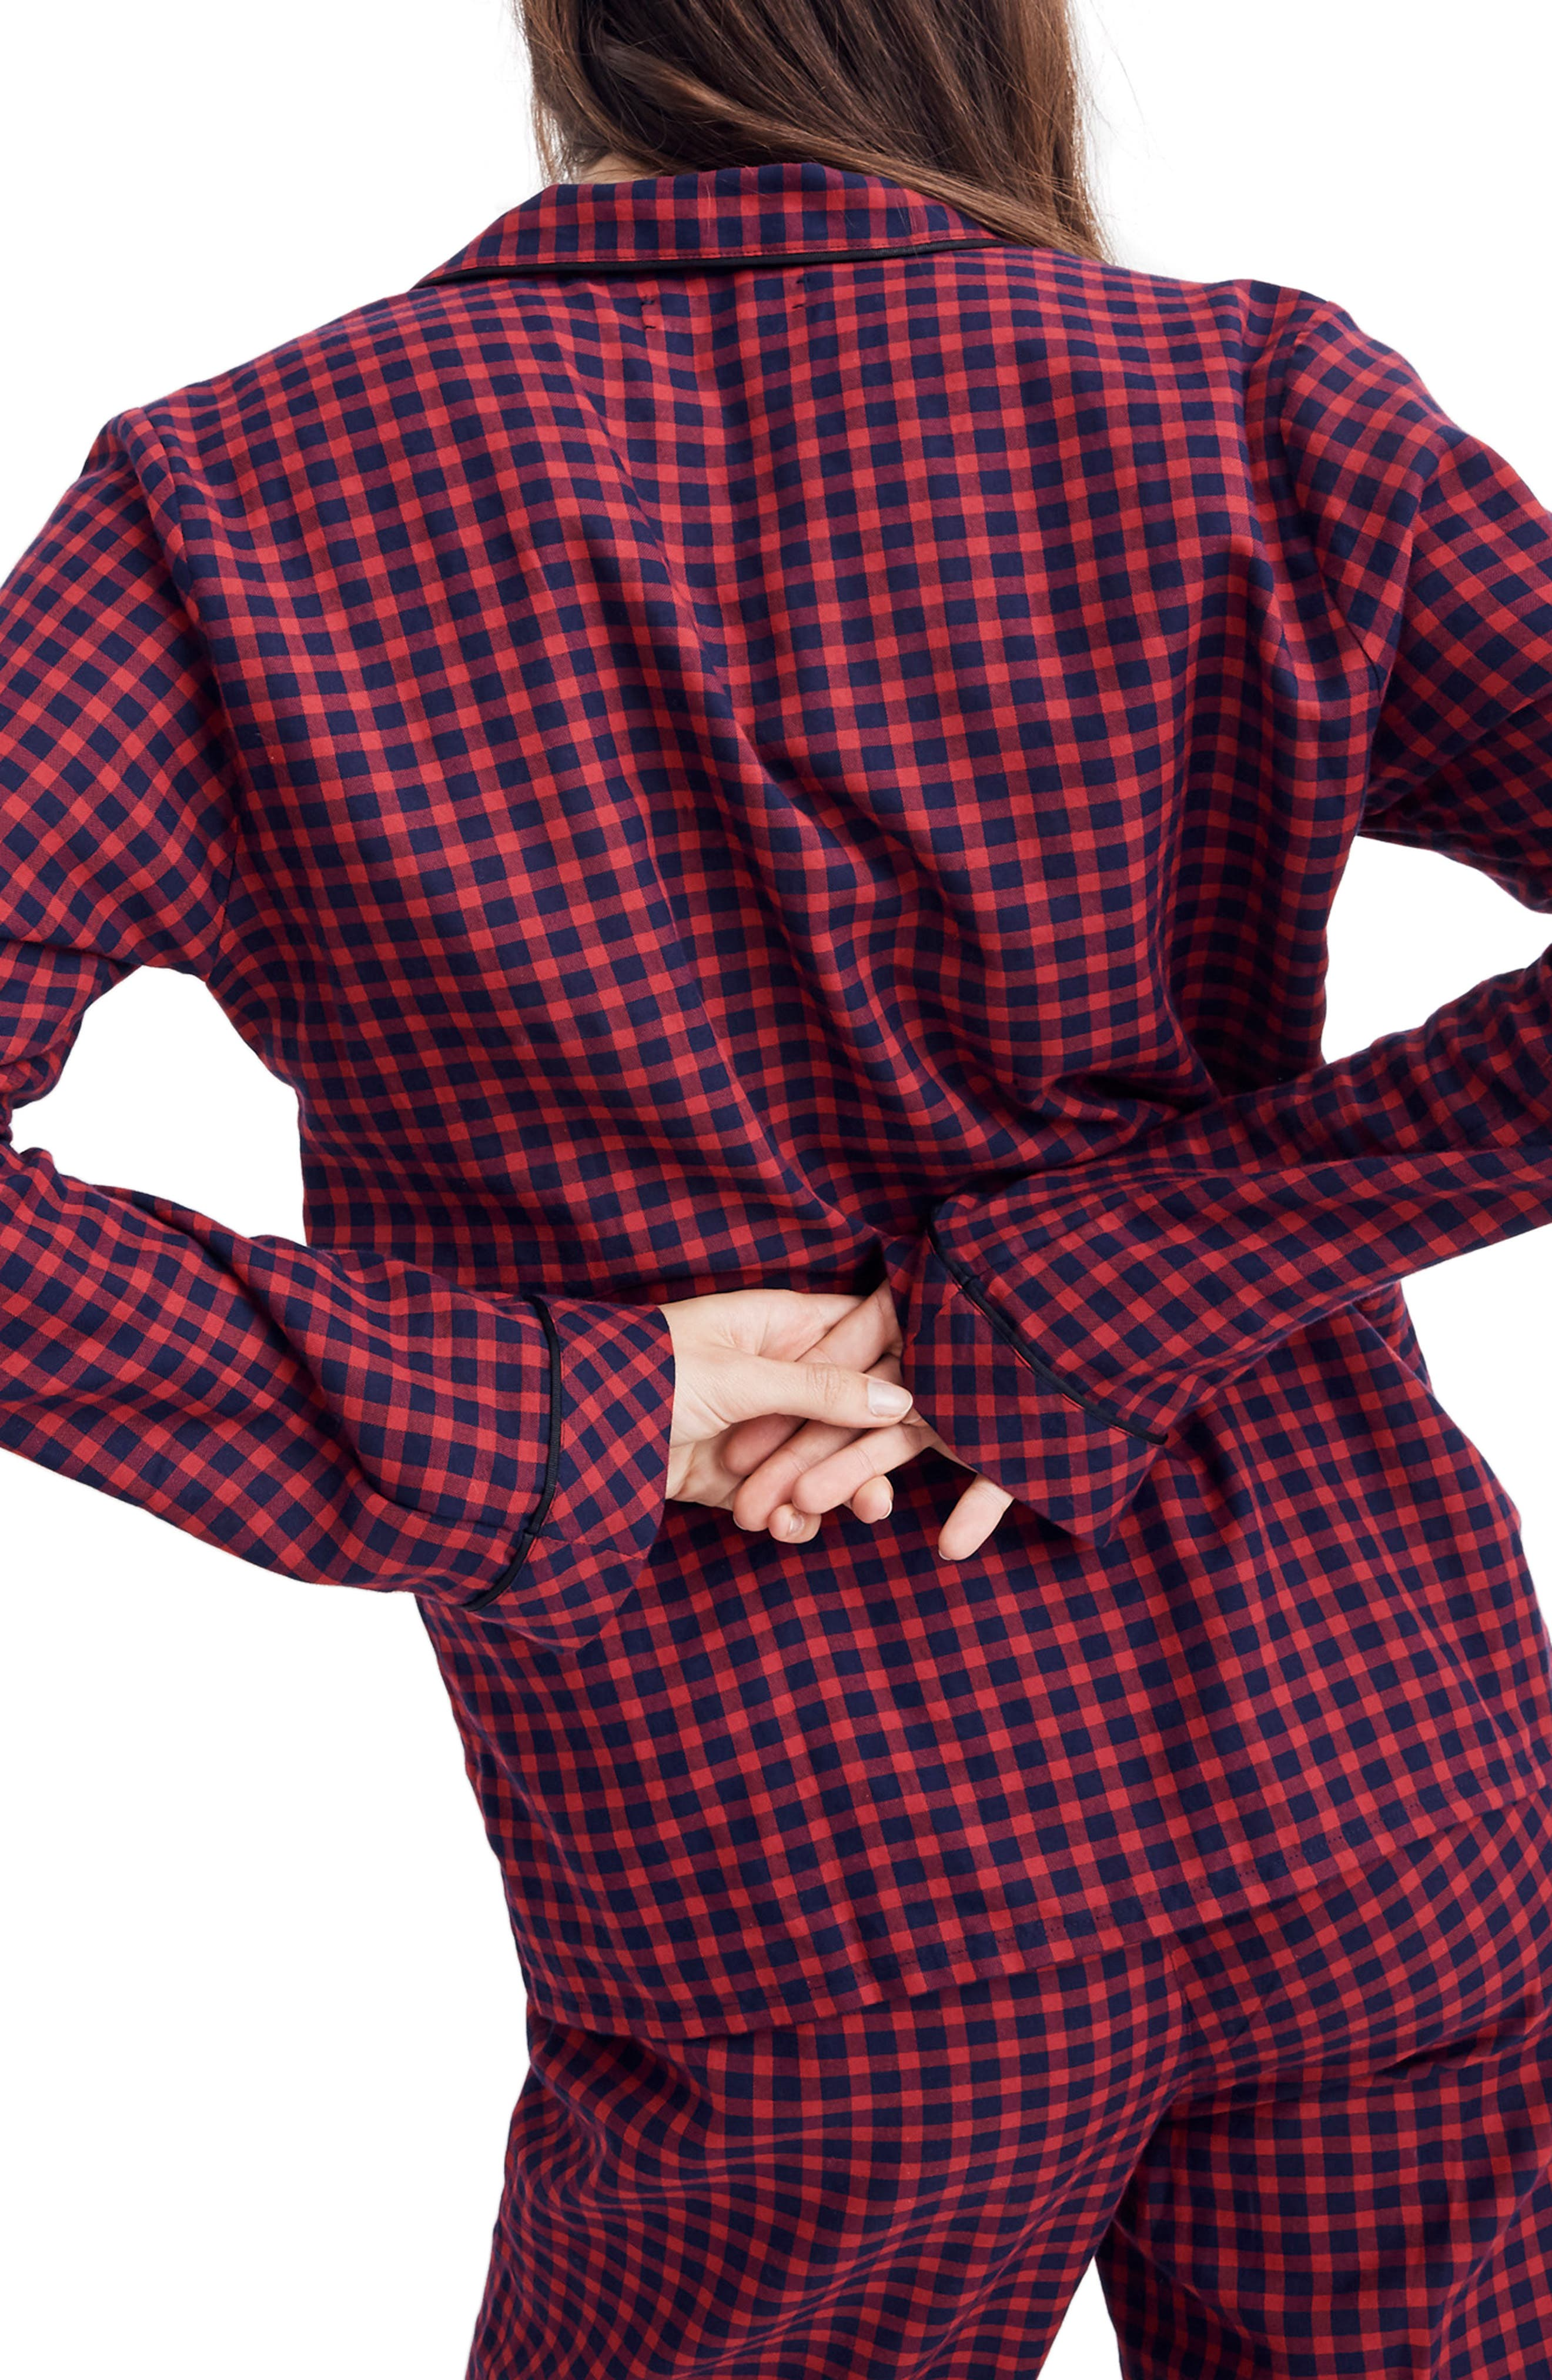 Bedtime Long Sleeve Pajama Top,                             Alternate thumbnail 2, color,                             CRANBERRY